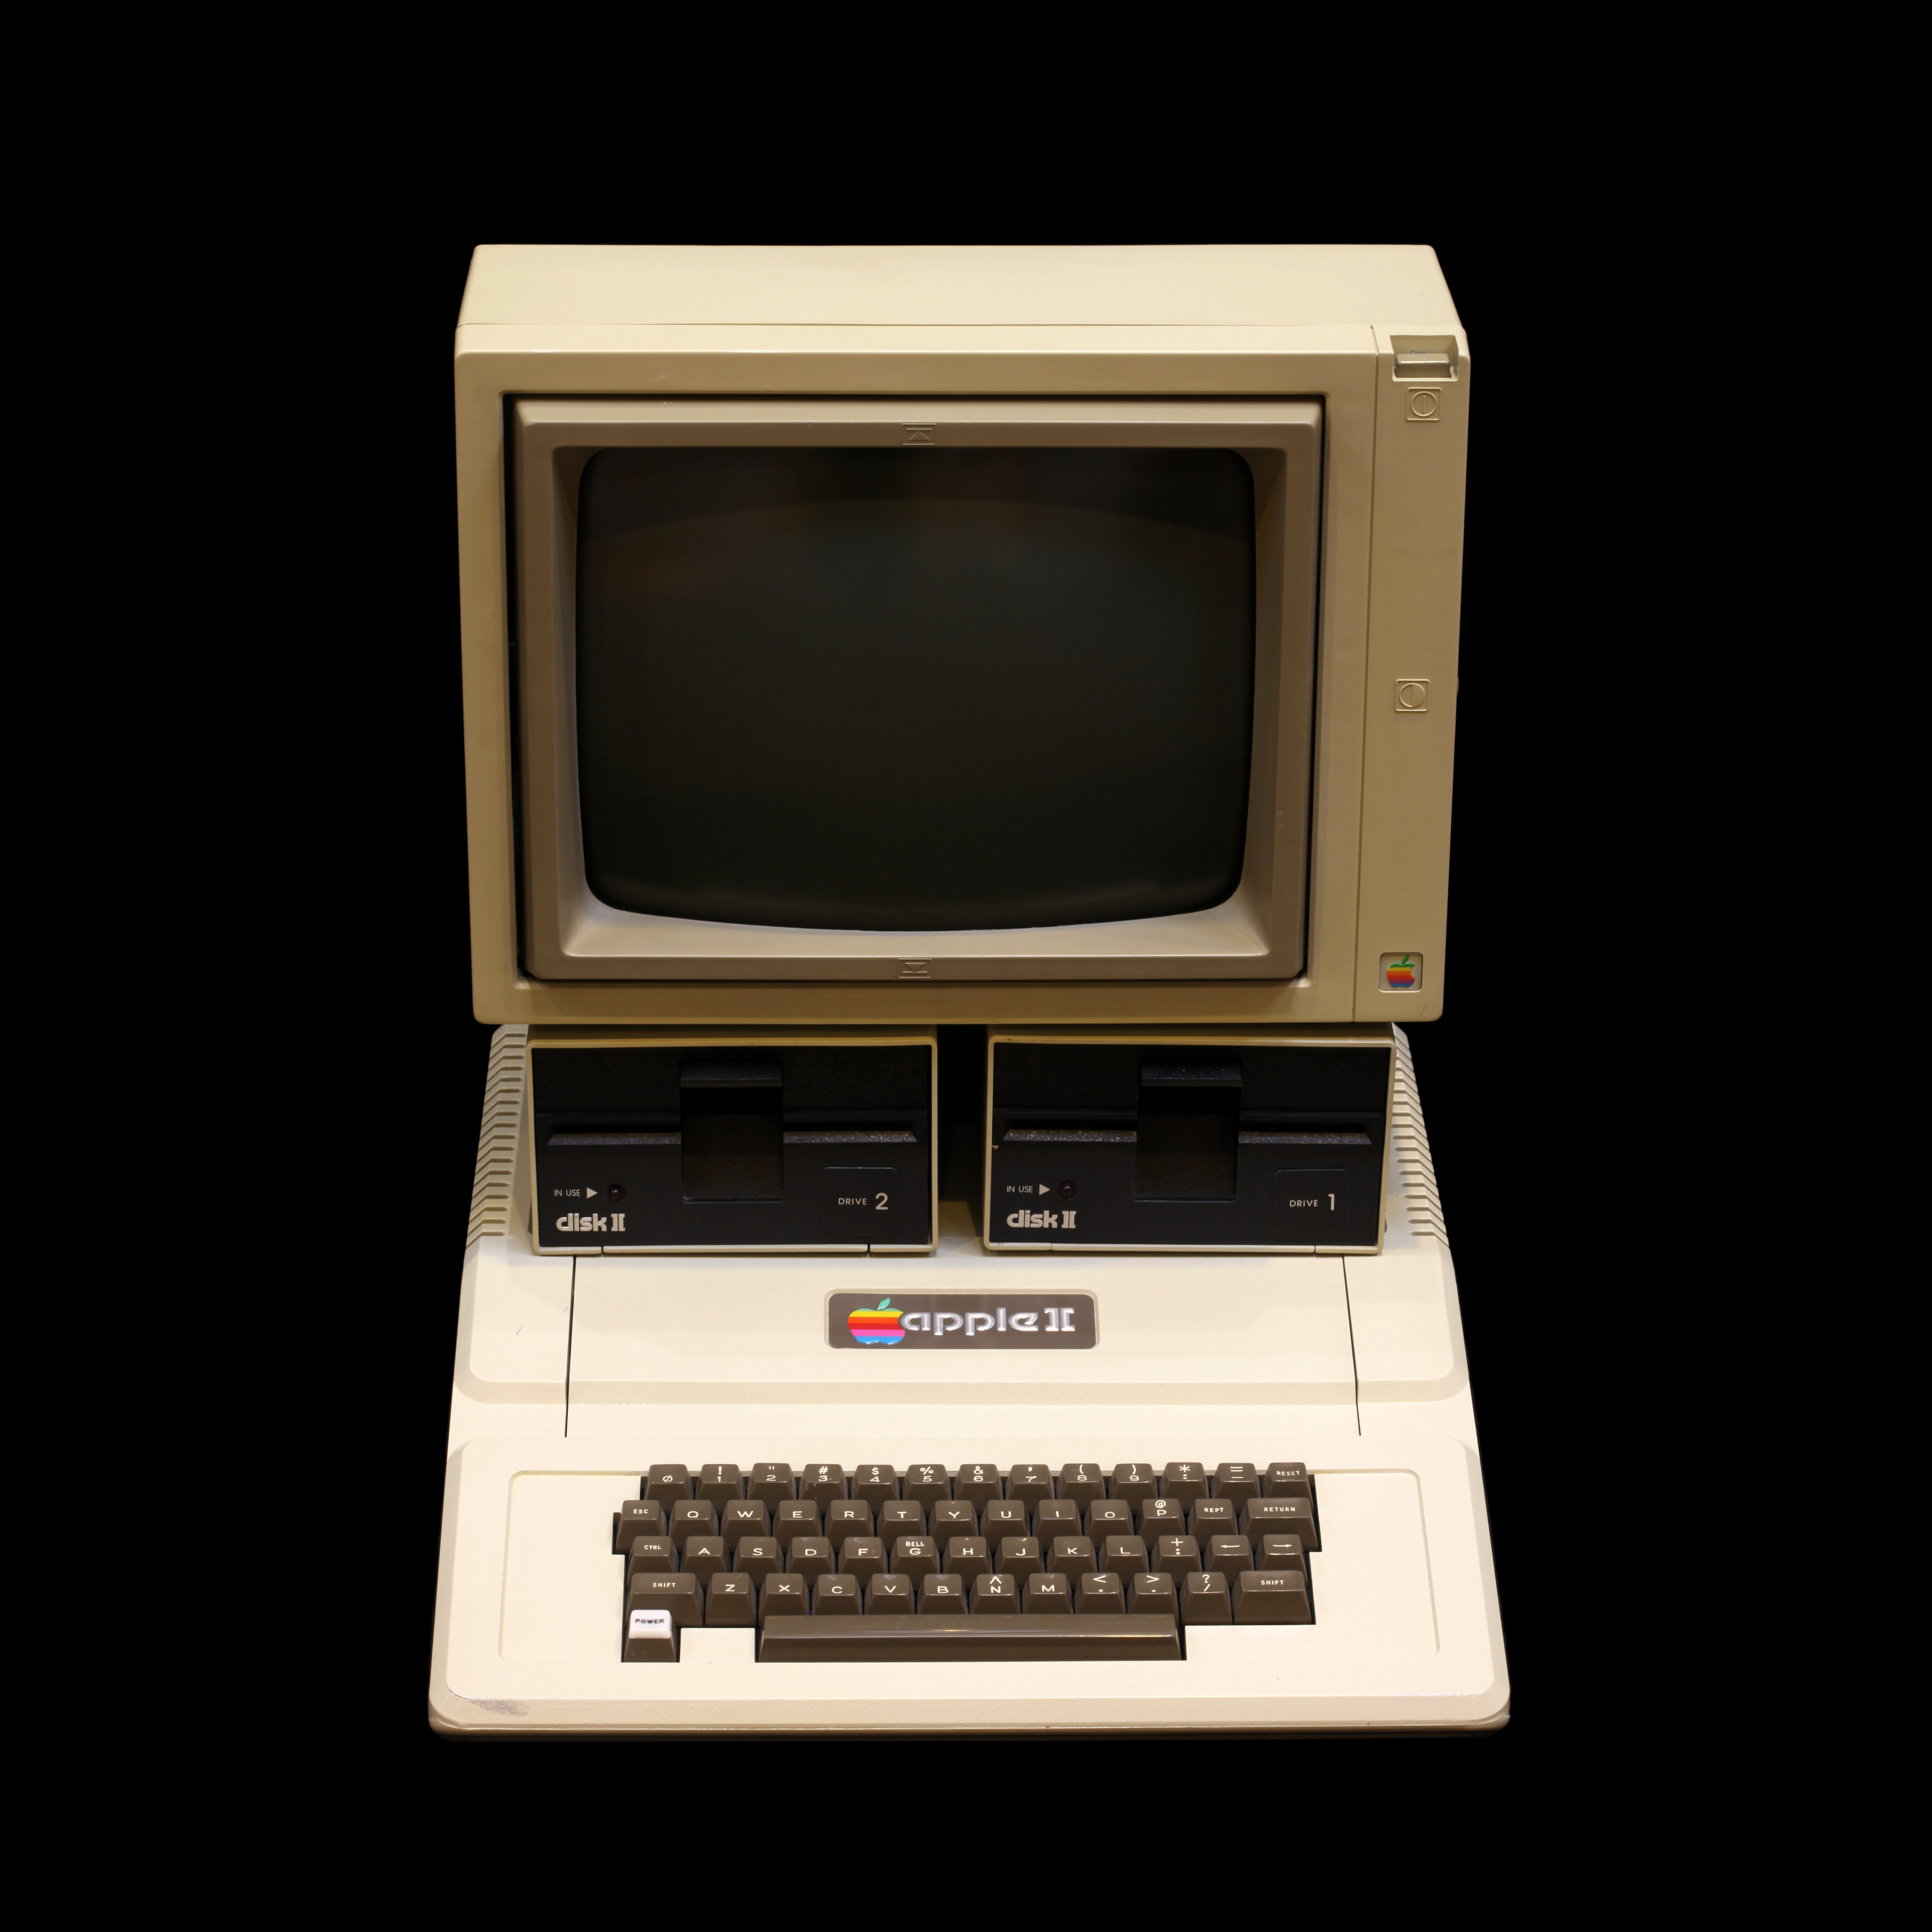 File:Apple II IMG 4214.jpg - Wikimedia Commons